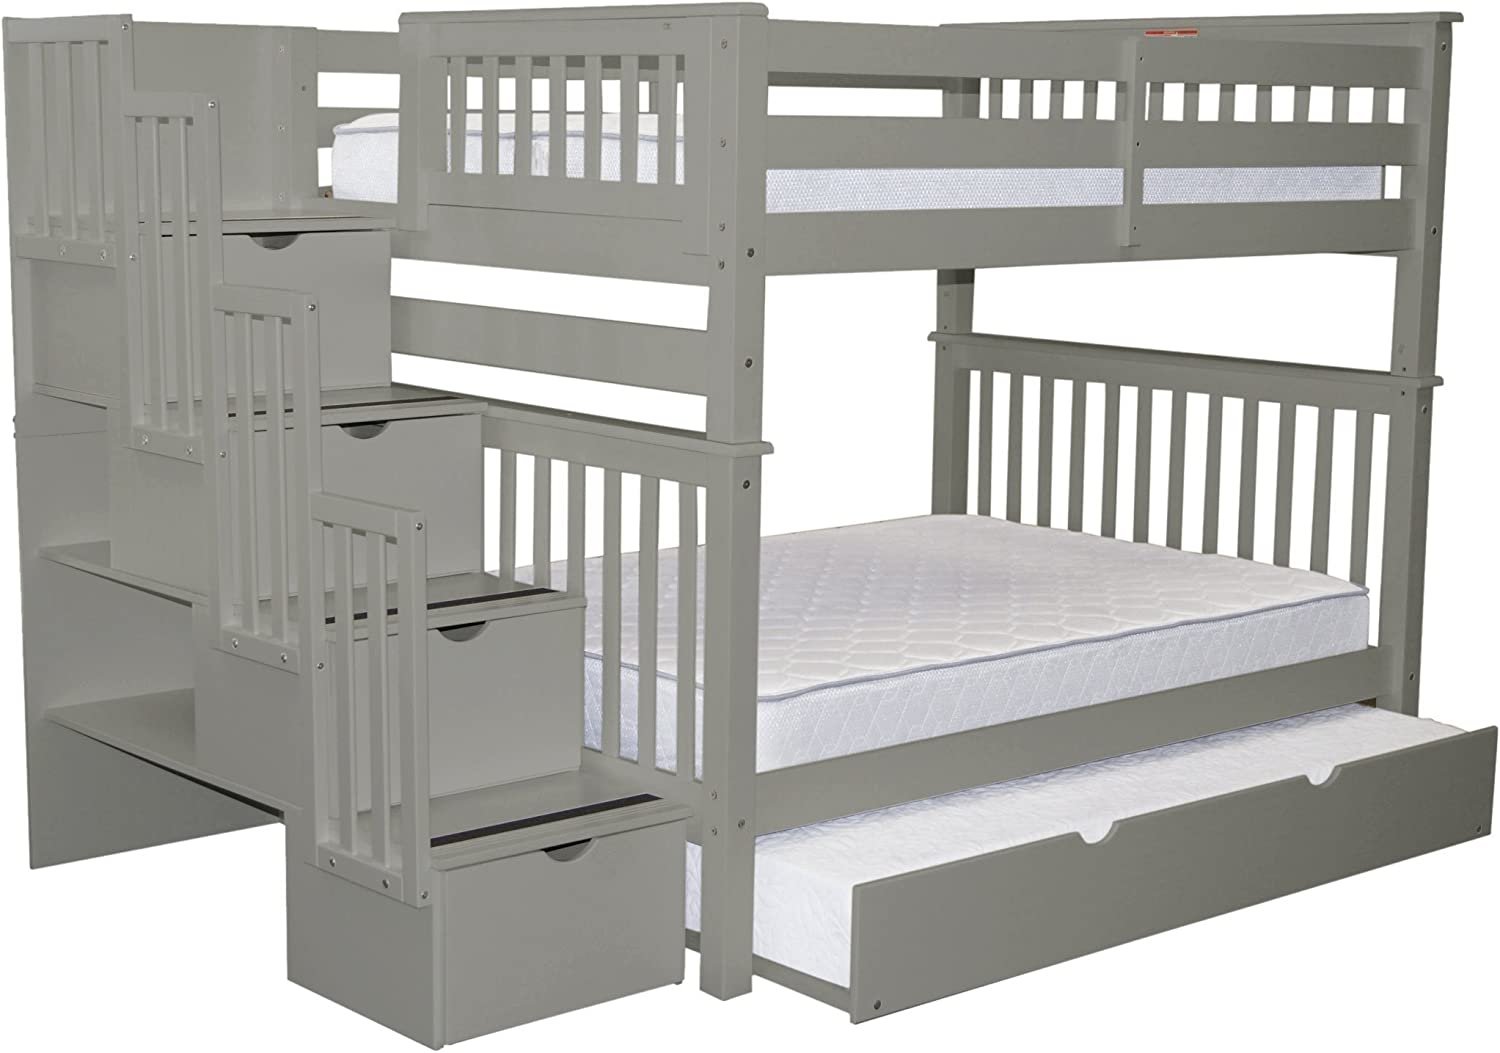 Bedz King Stairway Bunk Beds Full over Full with 4 Drawers in the Steps and a Twin Trundle, Gray